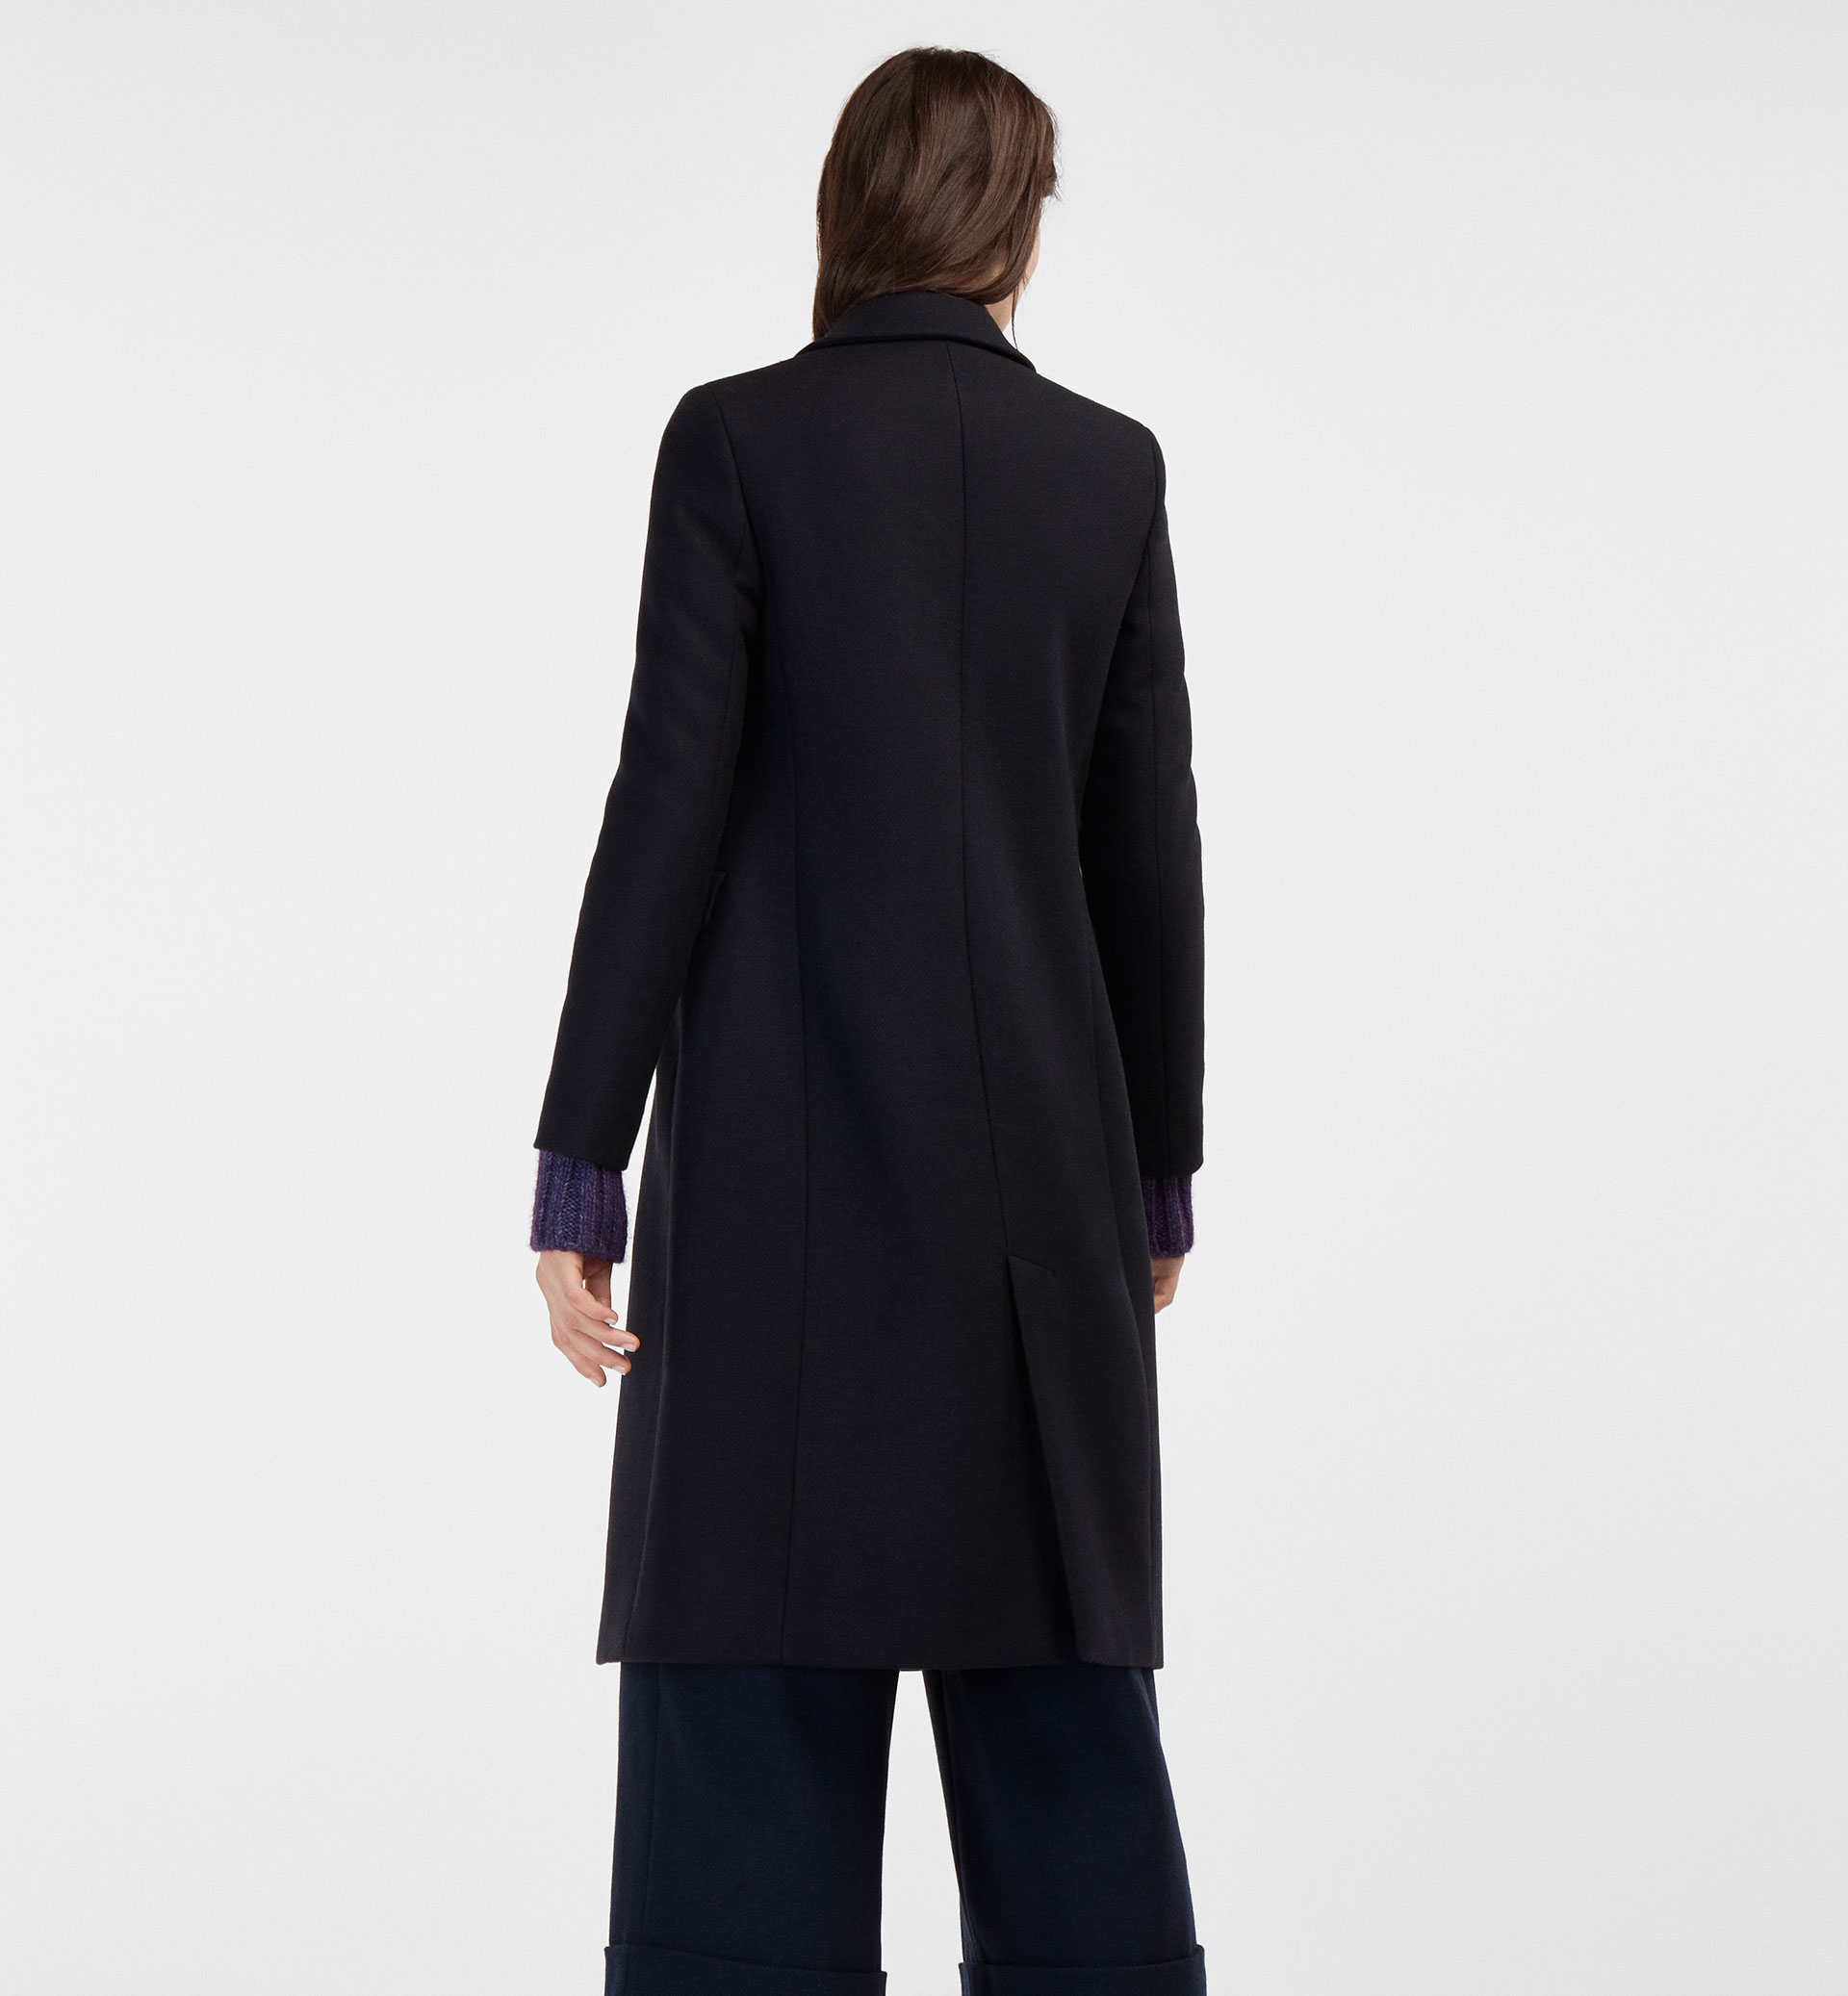 DOUBLE-BREASTED NAVY BLUE COAT